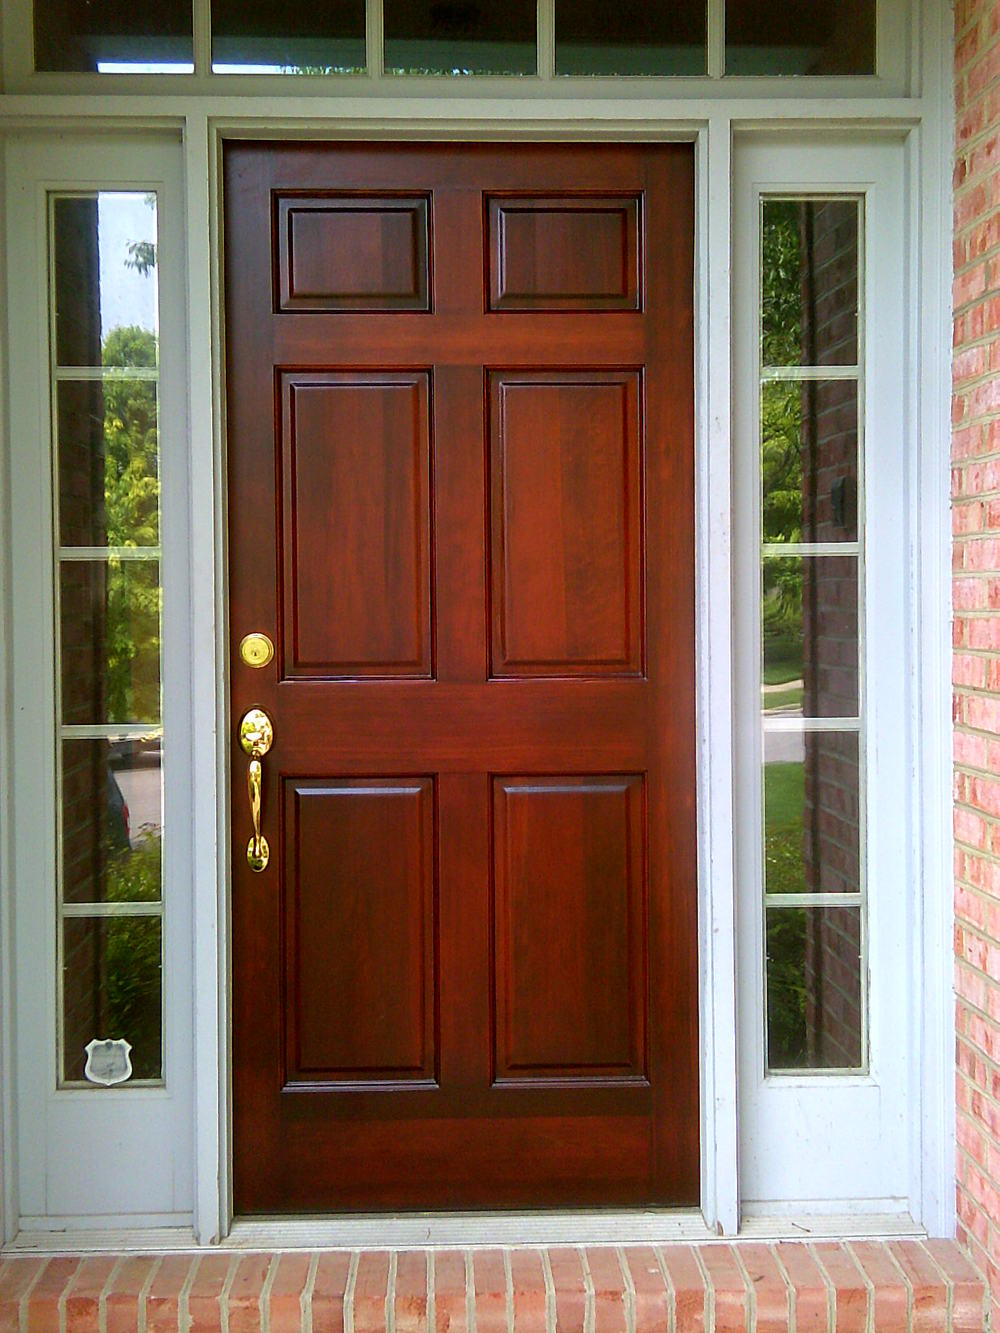 Door Renew Restore wood companies refinishing refinish replace replacing wooden new